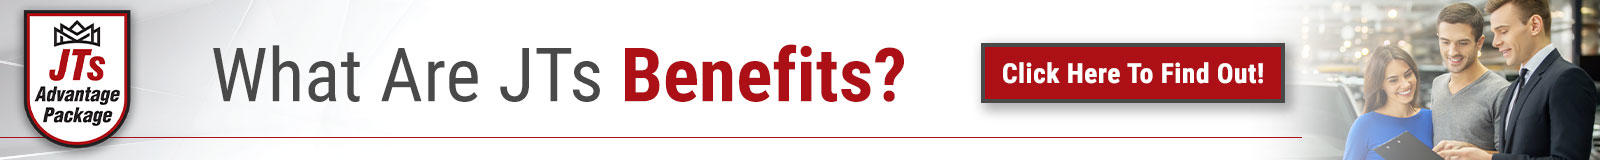 JTs Benefits